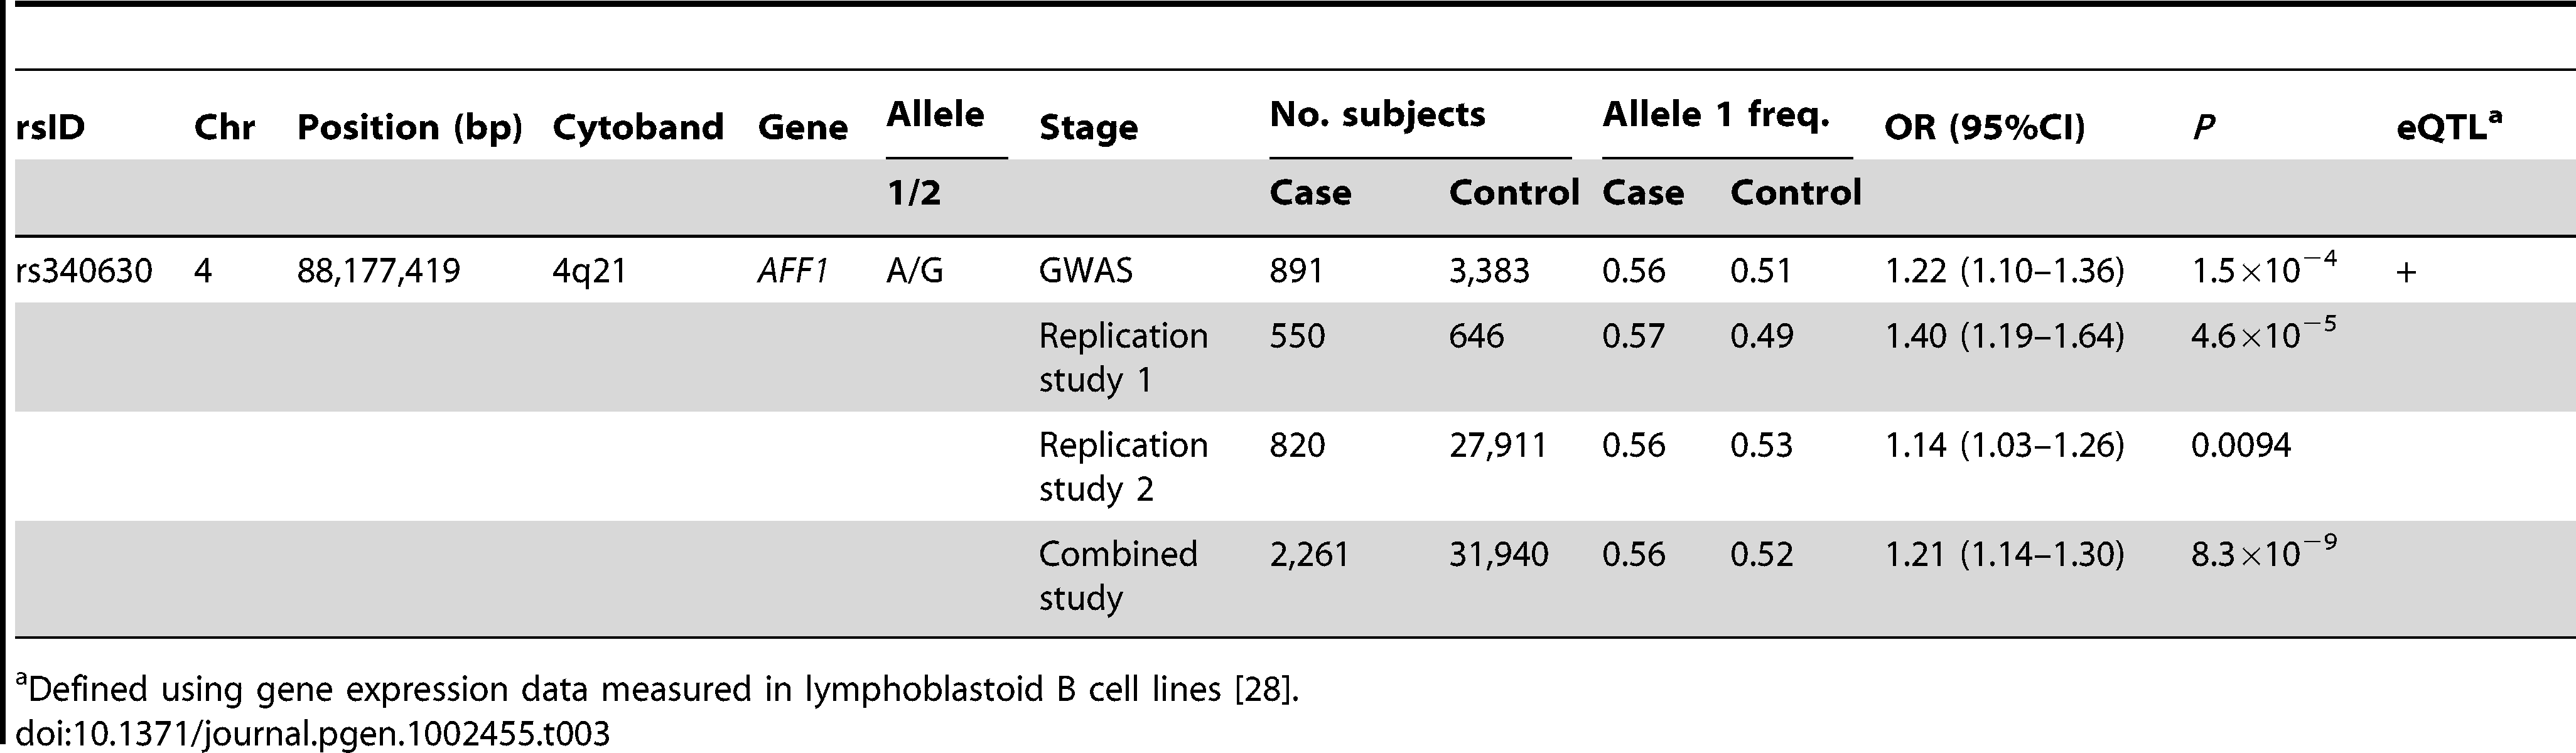 Results of combined study for Japanese patients with SLE.